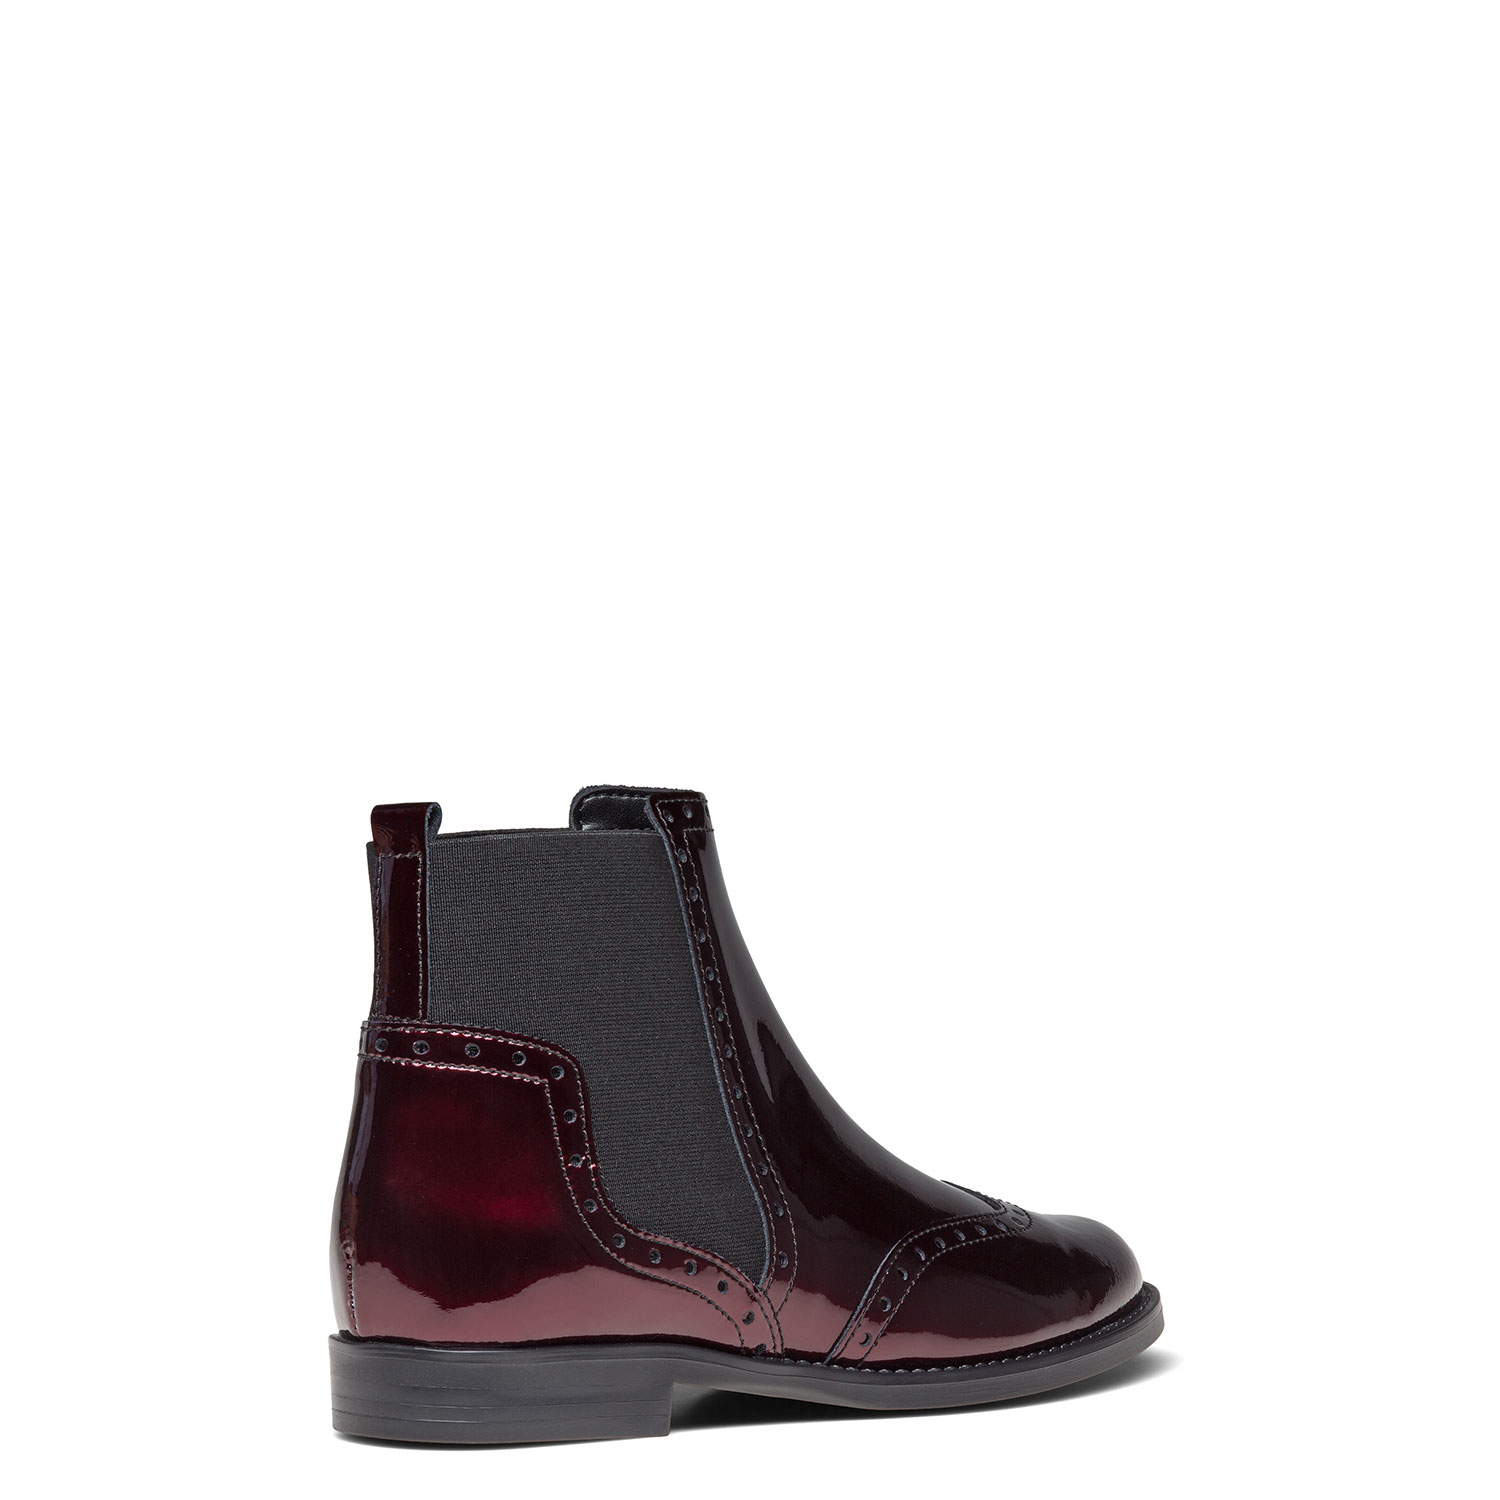 Women's ankle boots CARLO PAZOLINI SI-ANA5-11